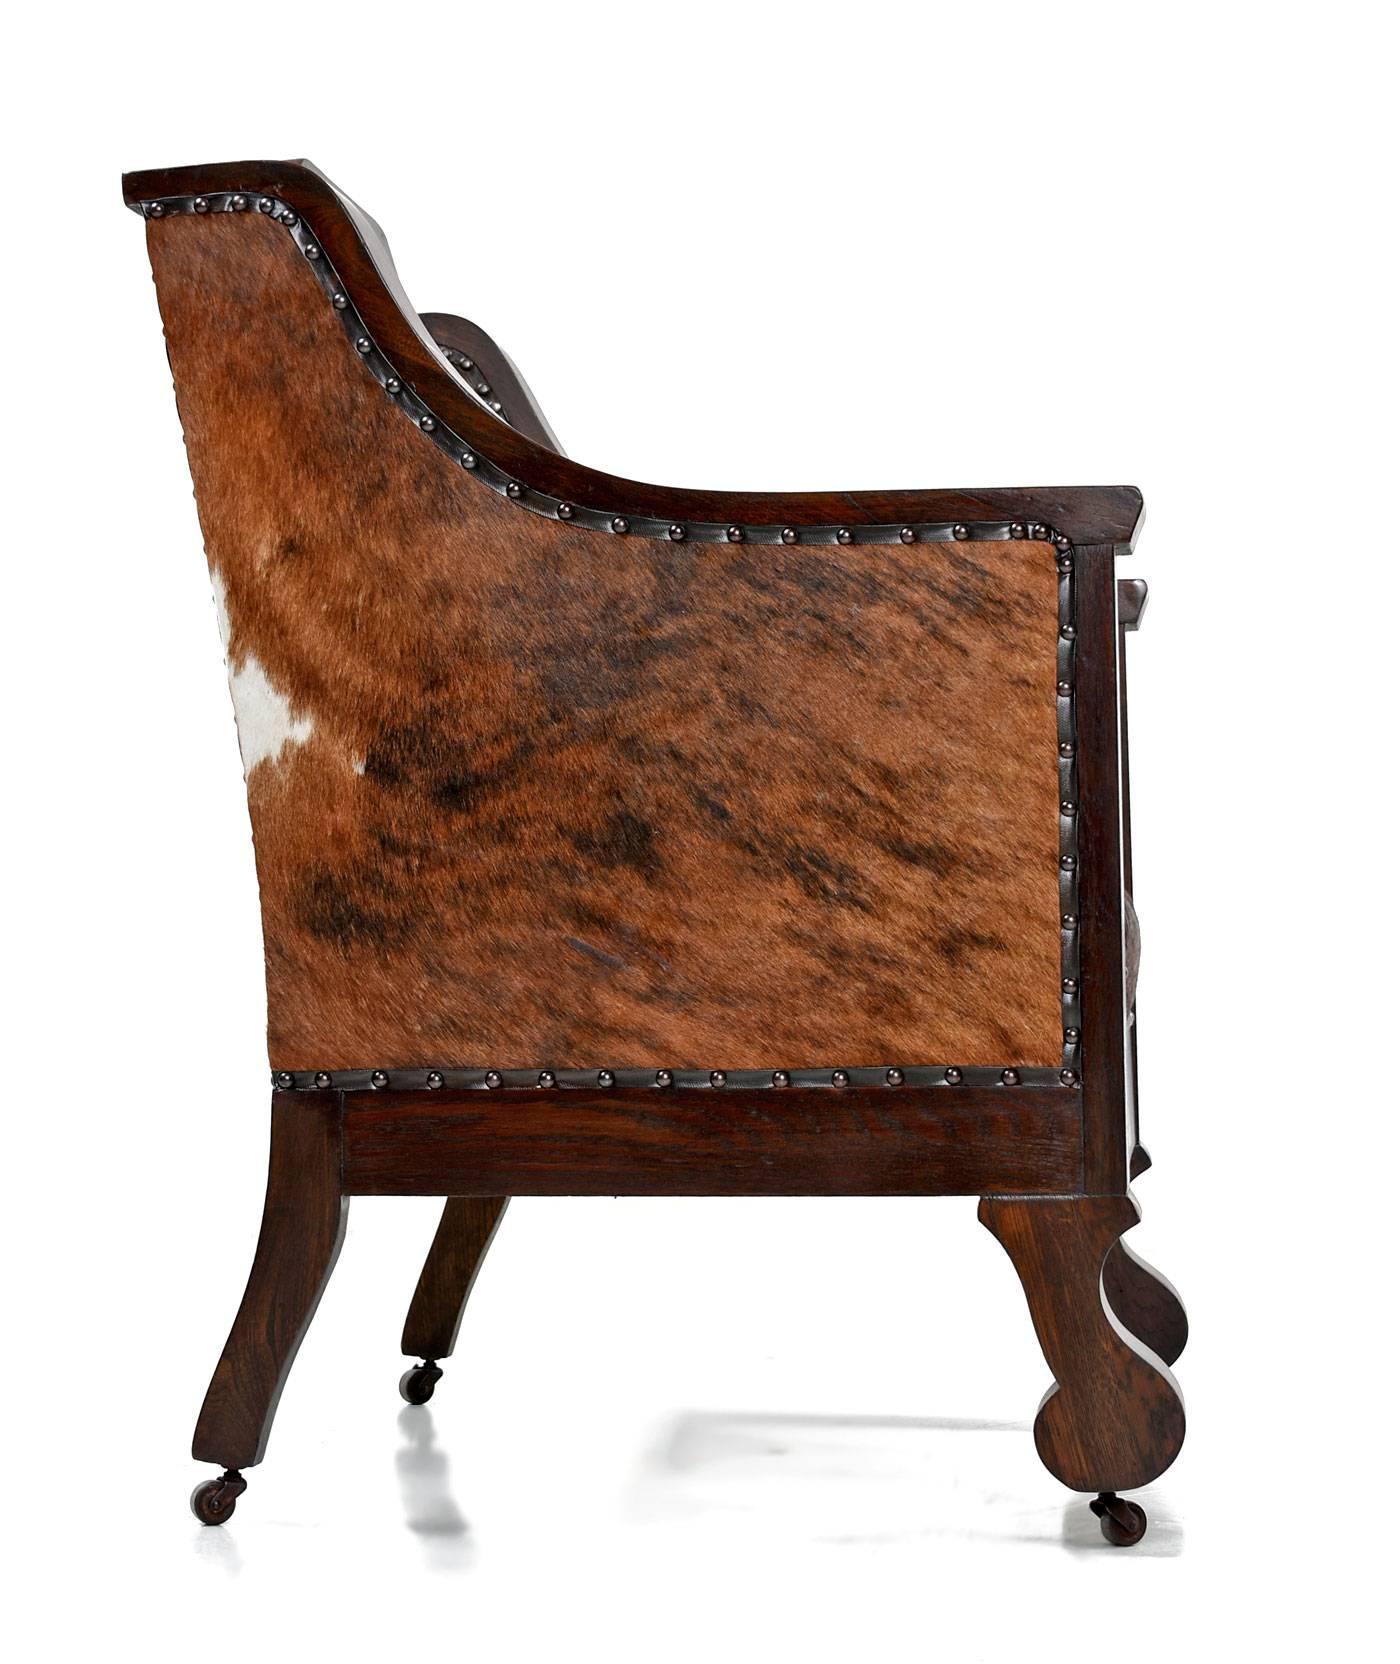 The Furnish Early 1800s Handmade Empire Style Leather Thrown Chair Re Invented In Cowhide